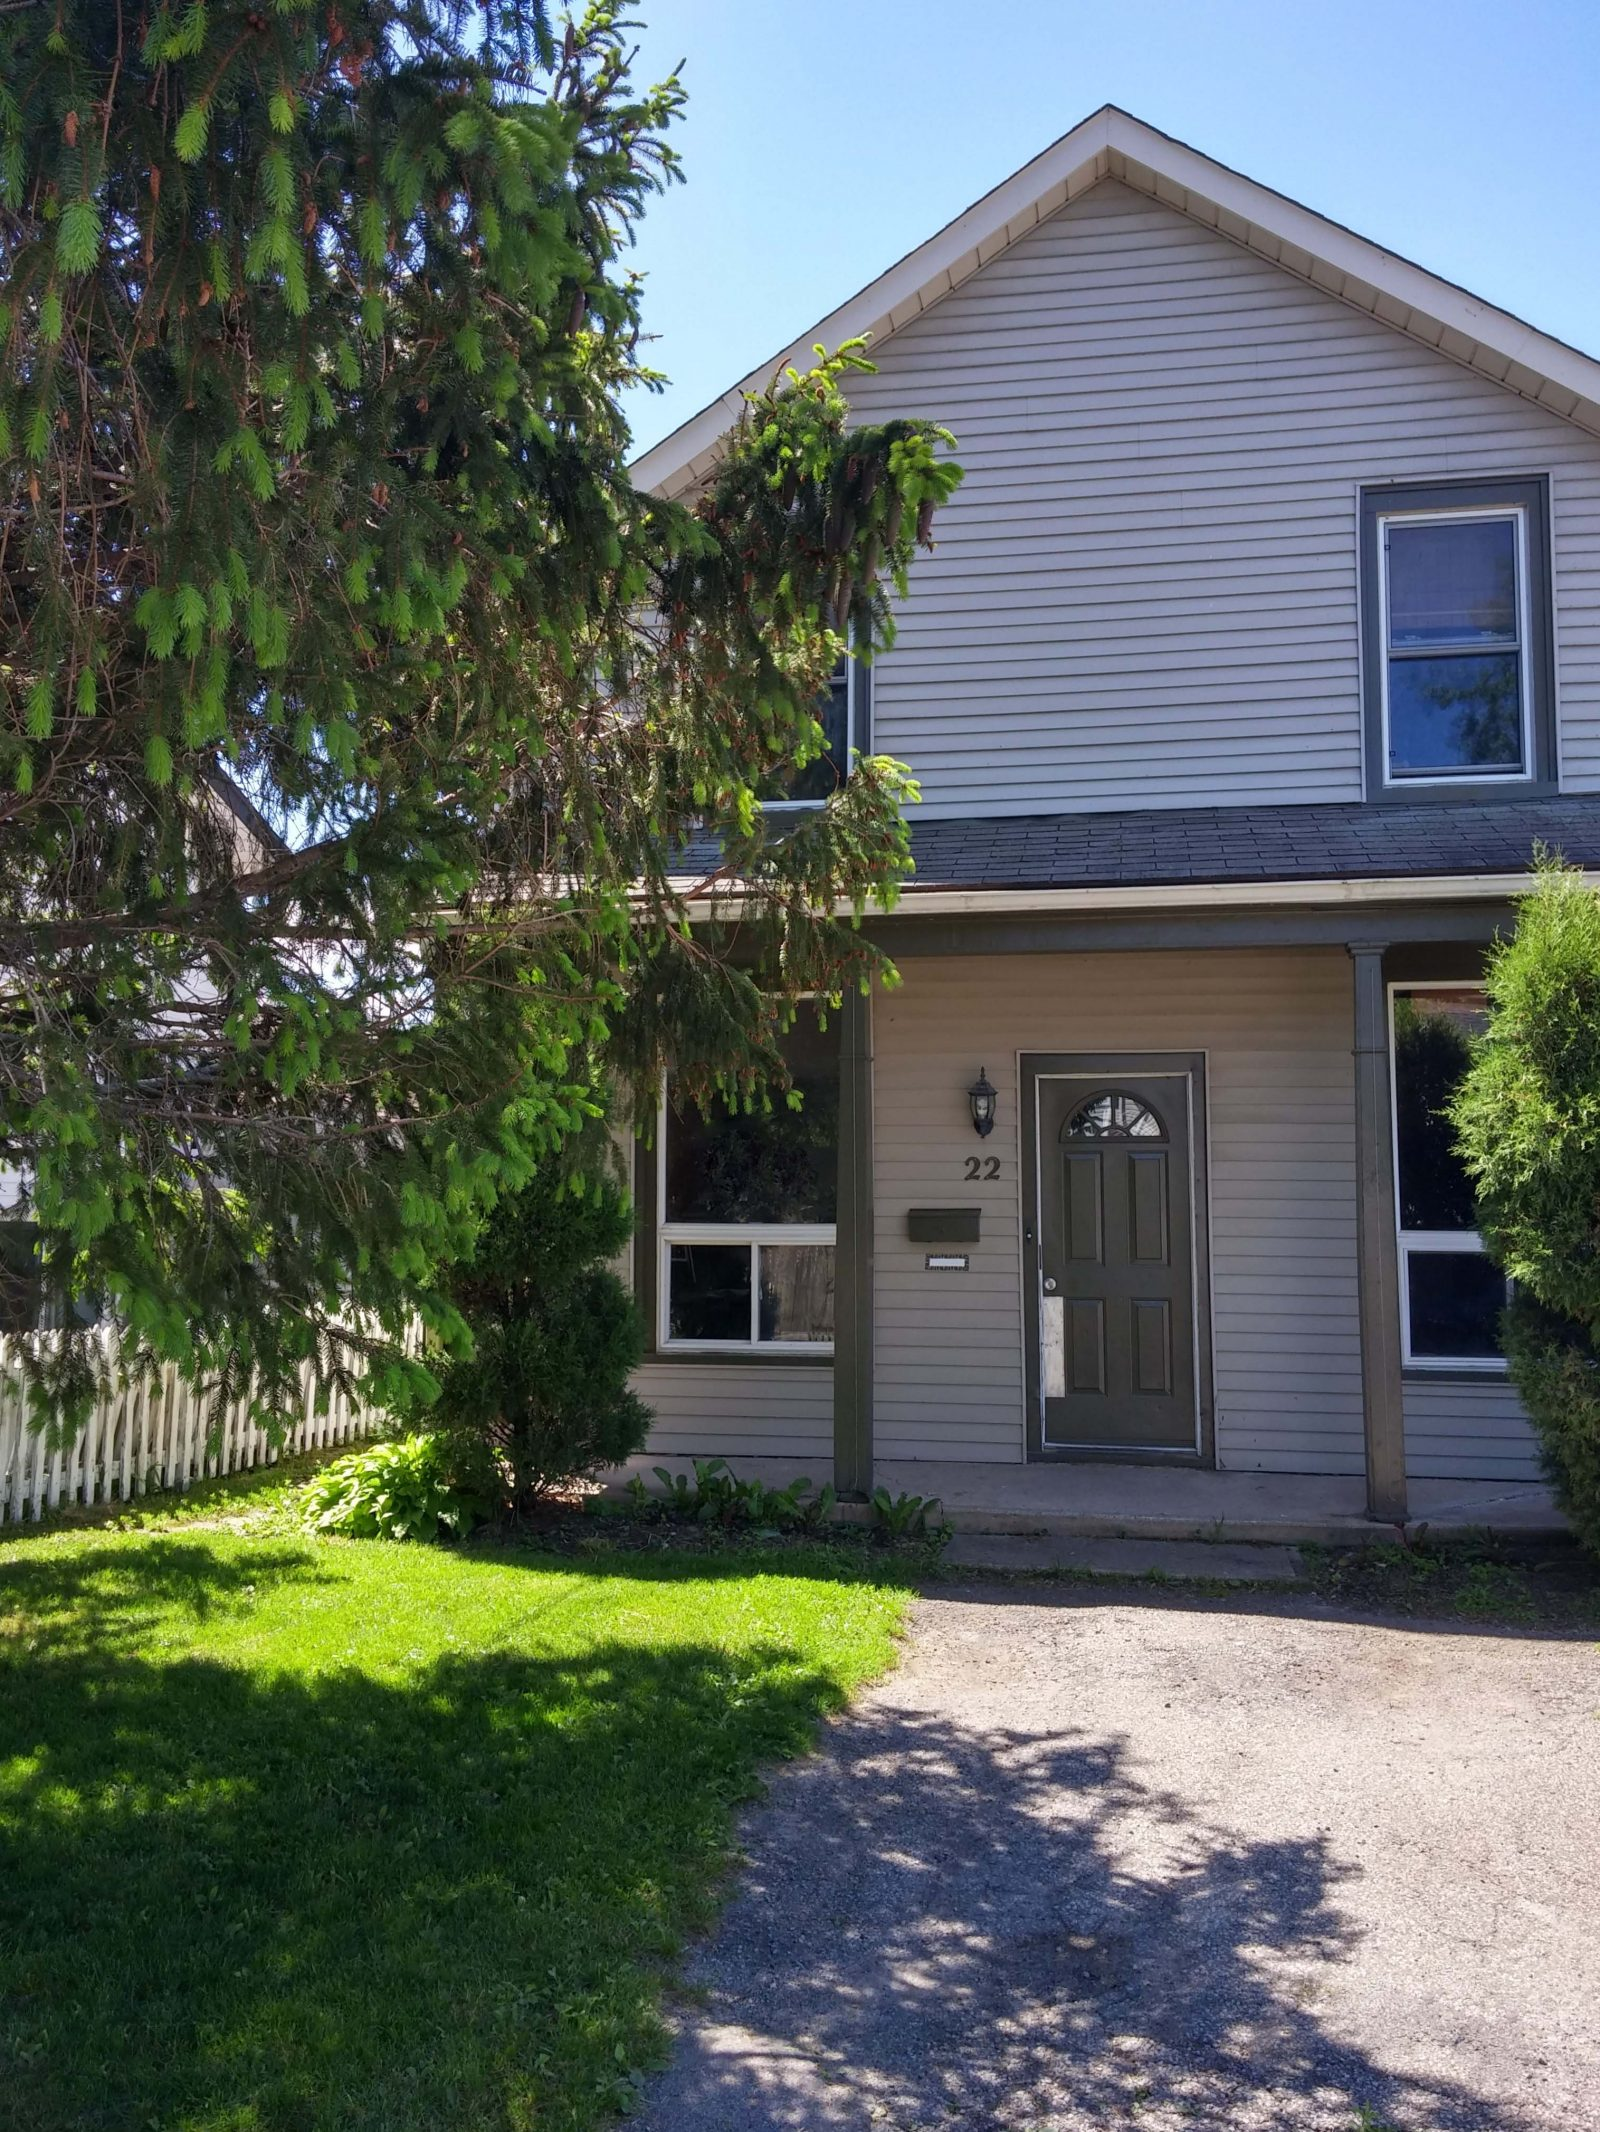 Apartment For Rent In North St Catharines The Brock News